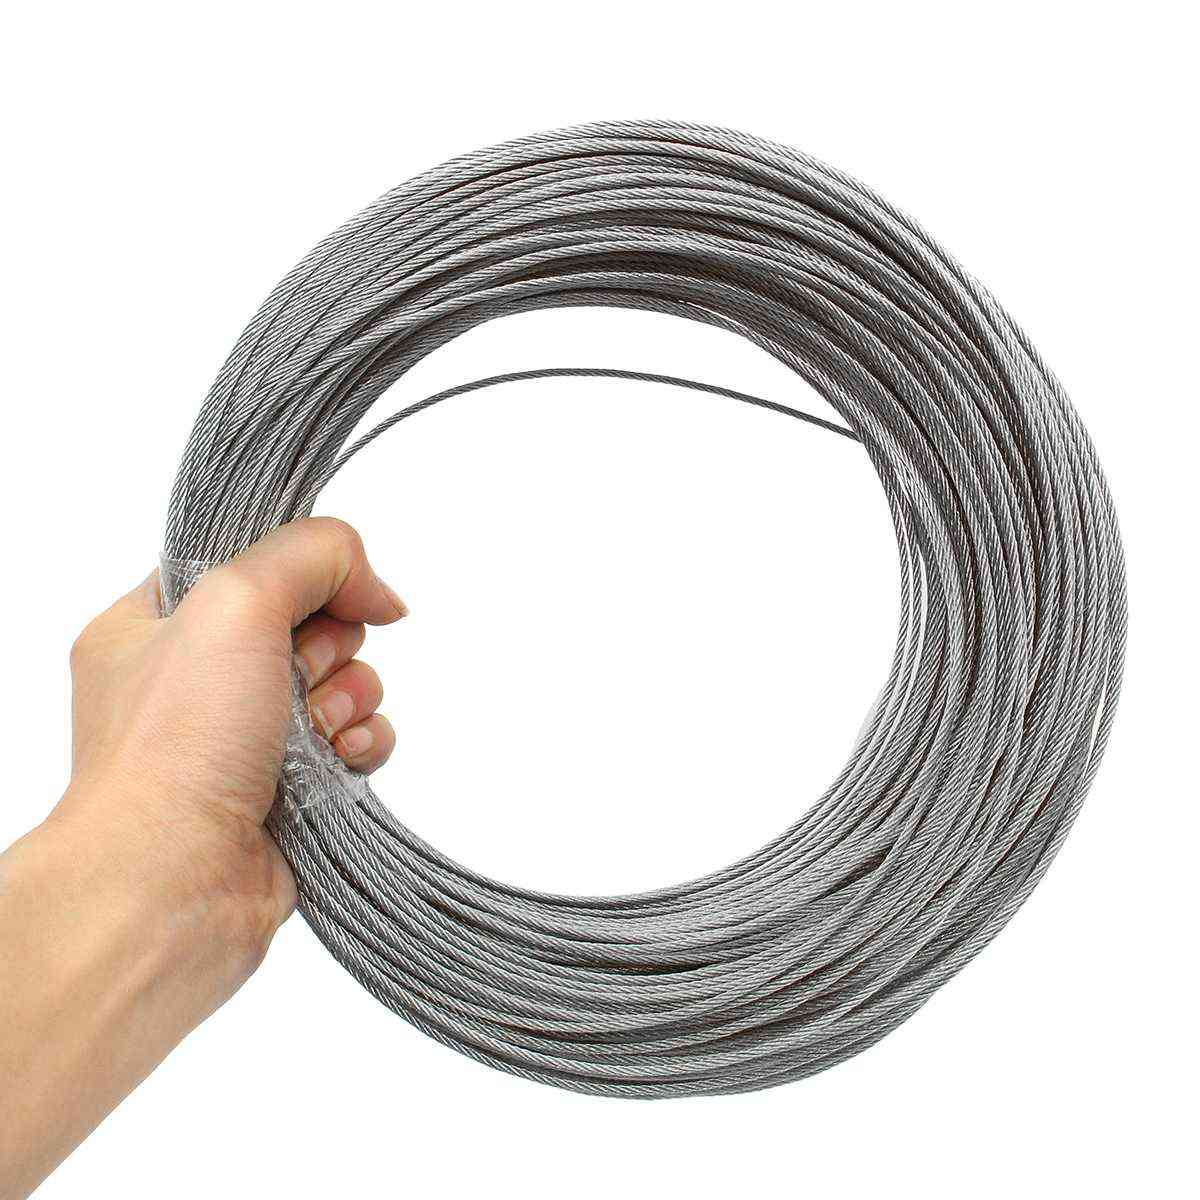 Stainless Steel Wire Rope, Fishing Lifting Cable Line